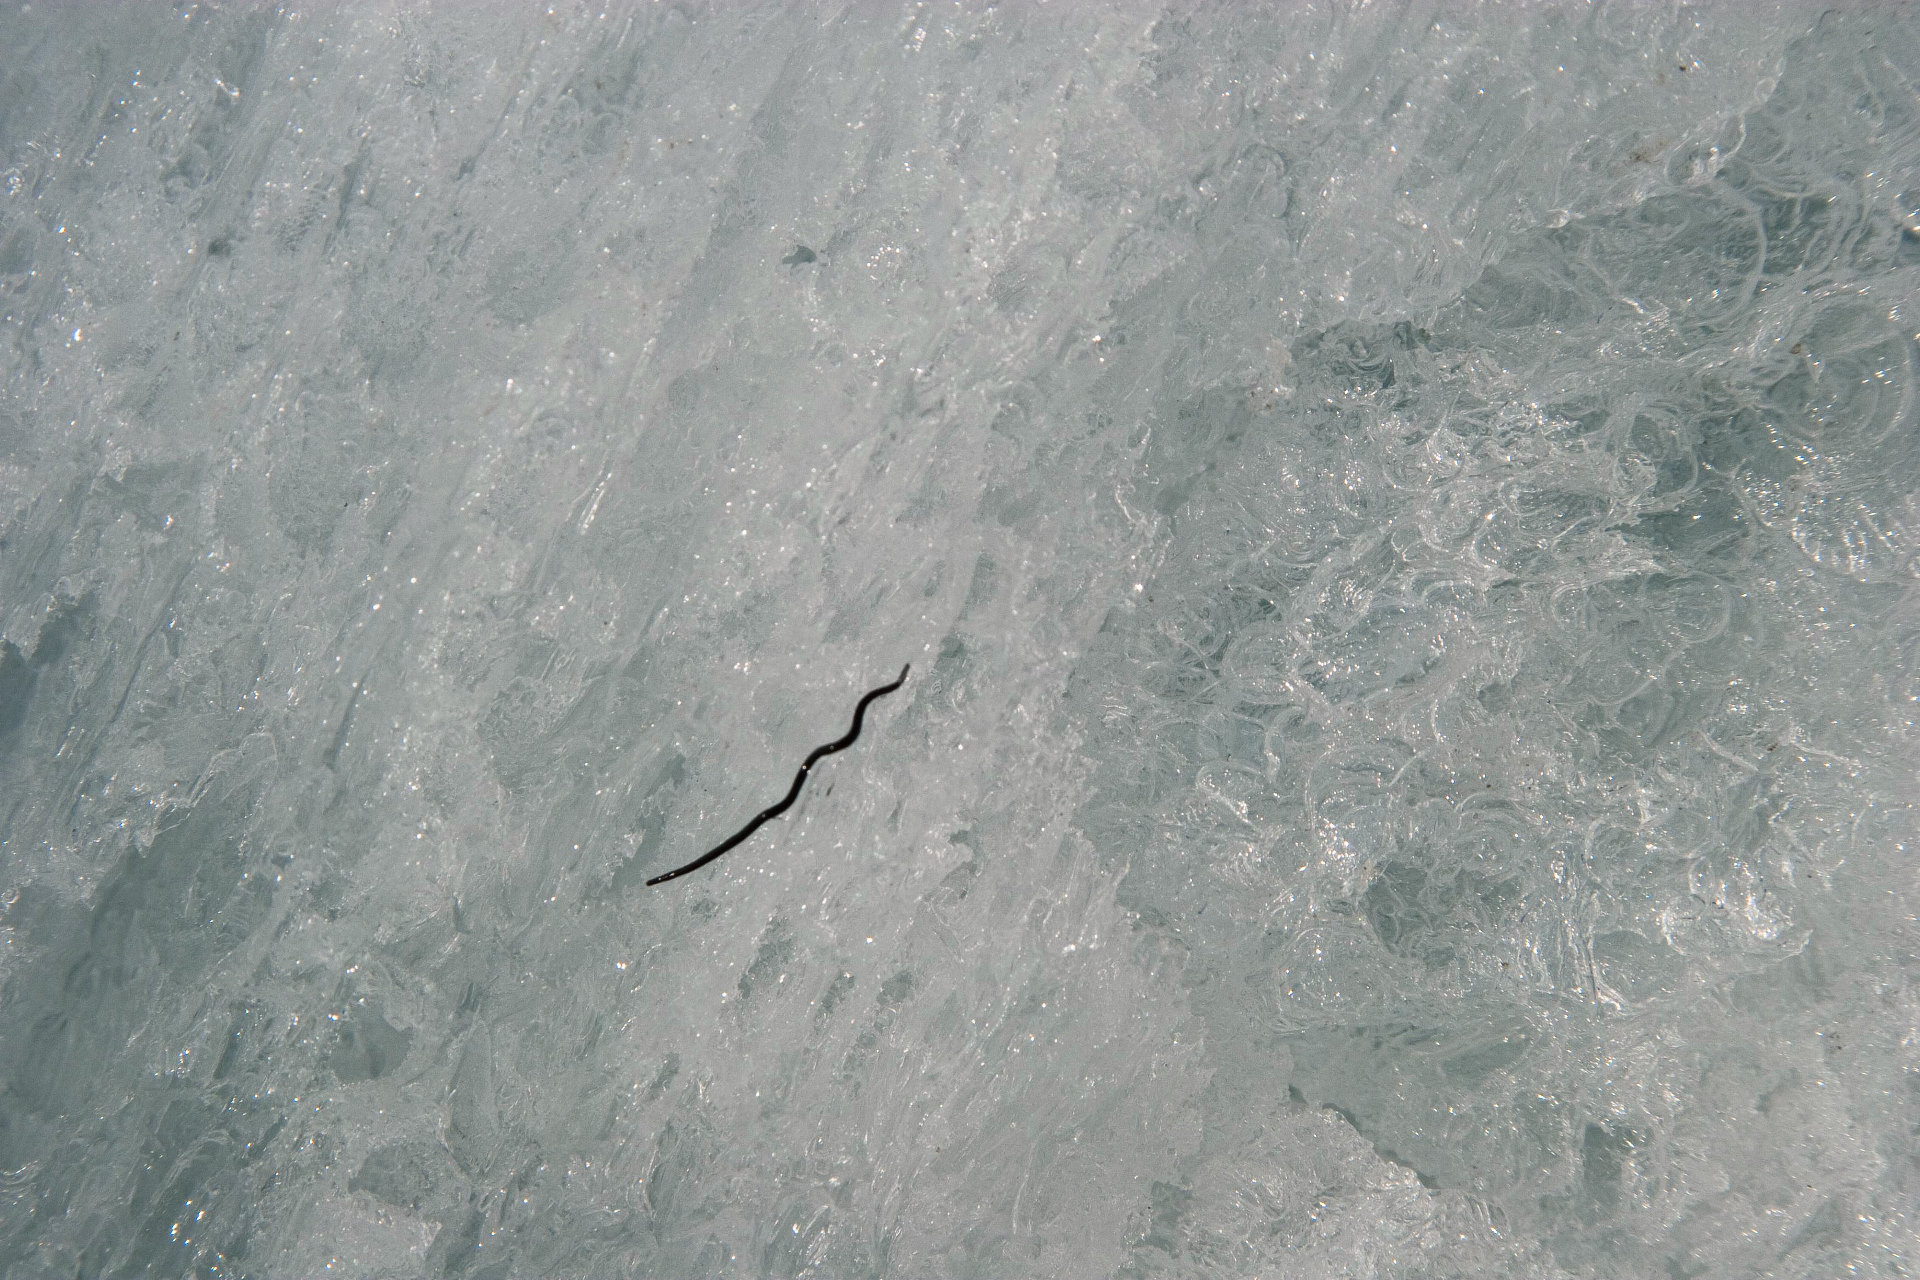 Ice worms crawling around the granulated snow.